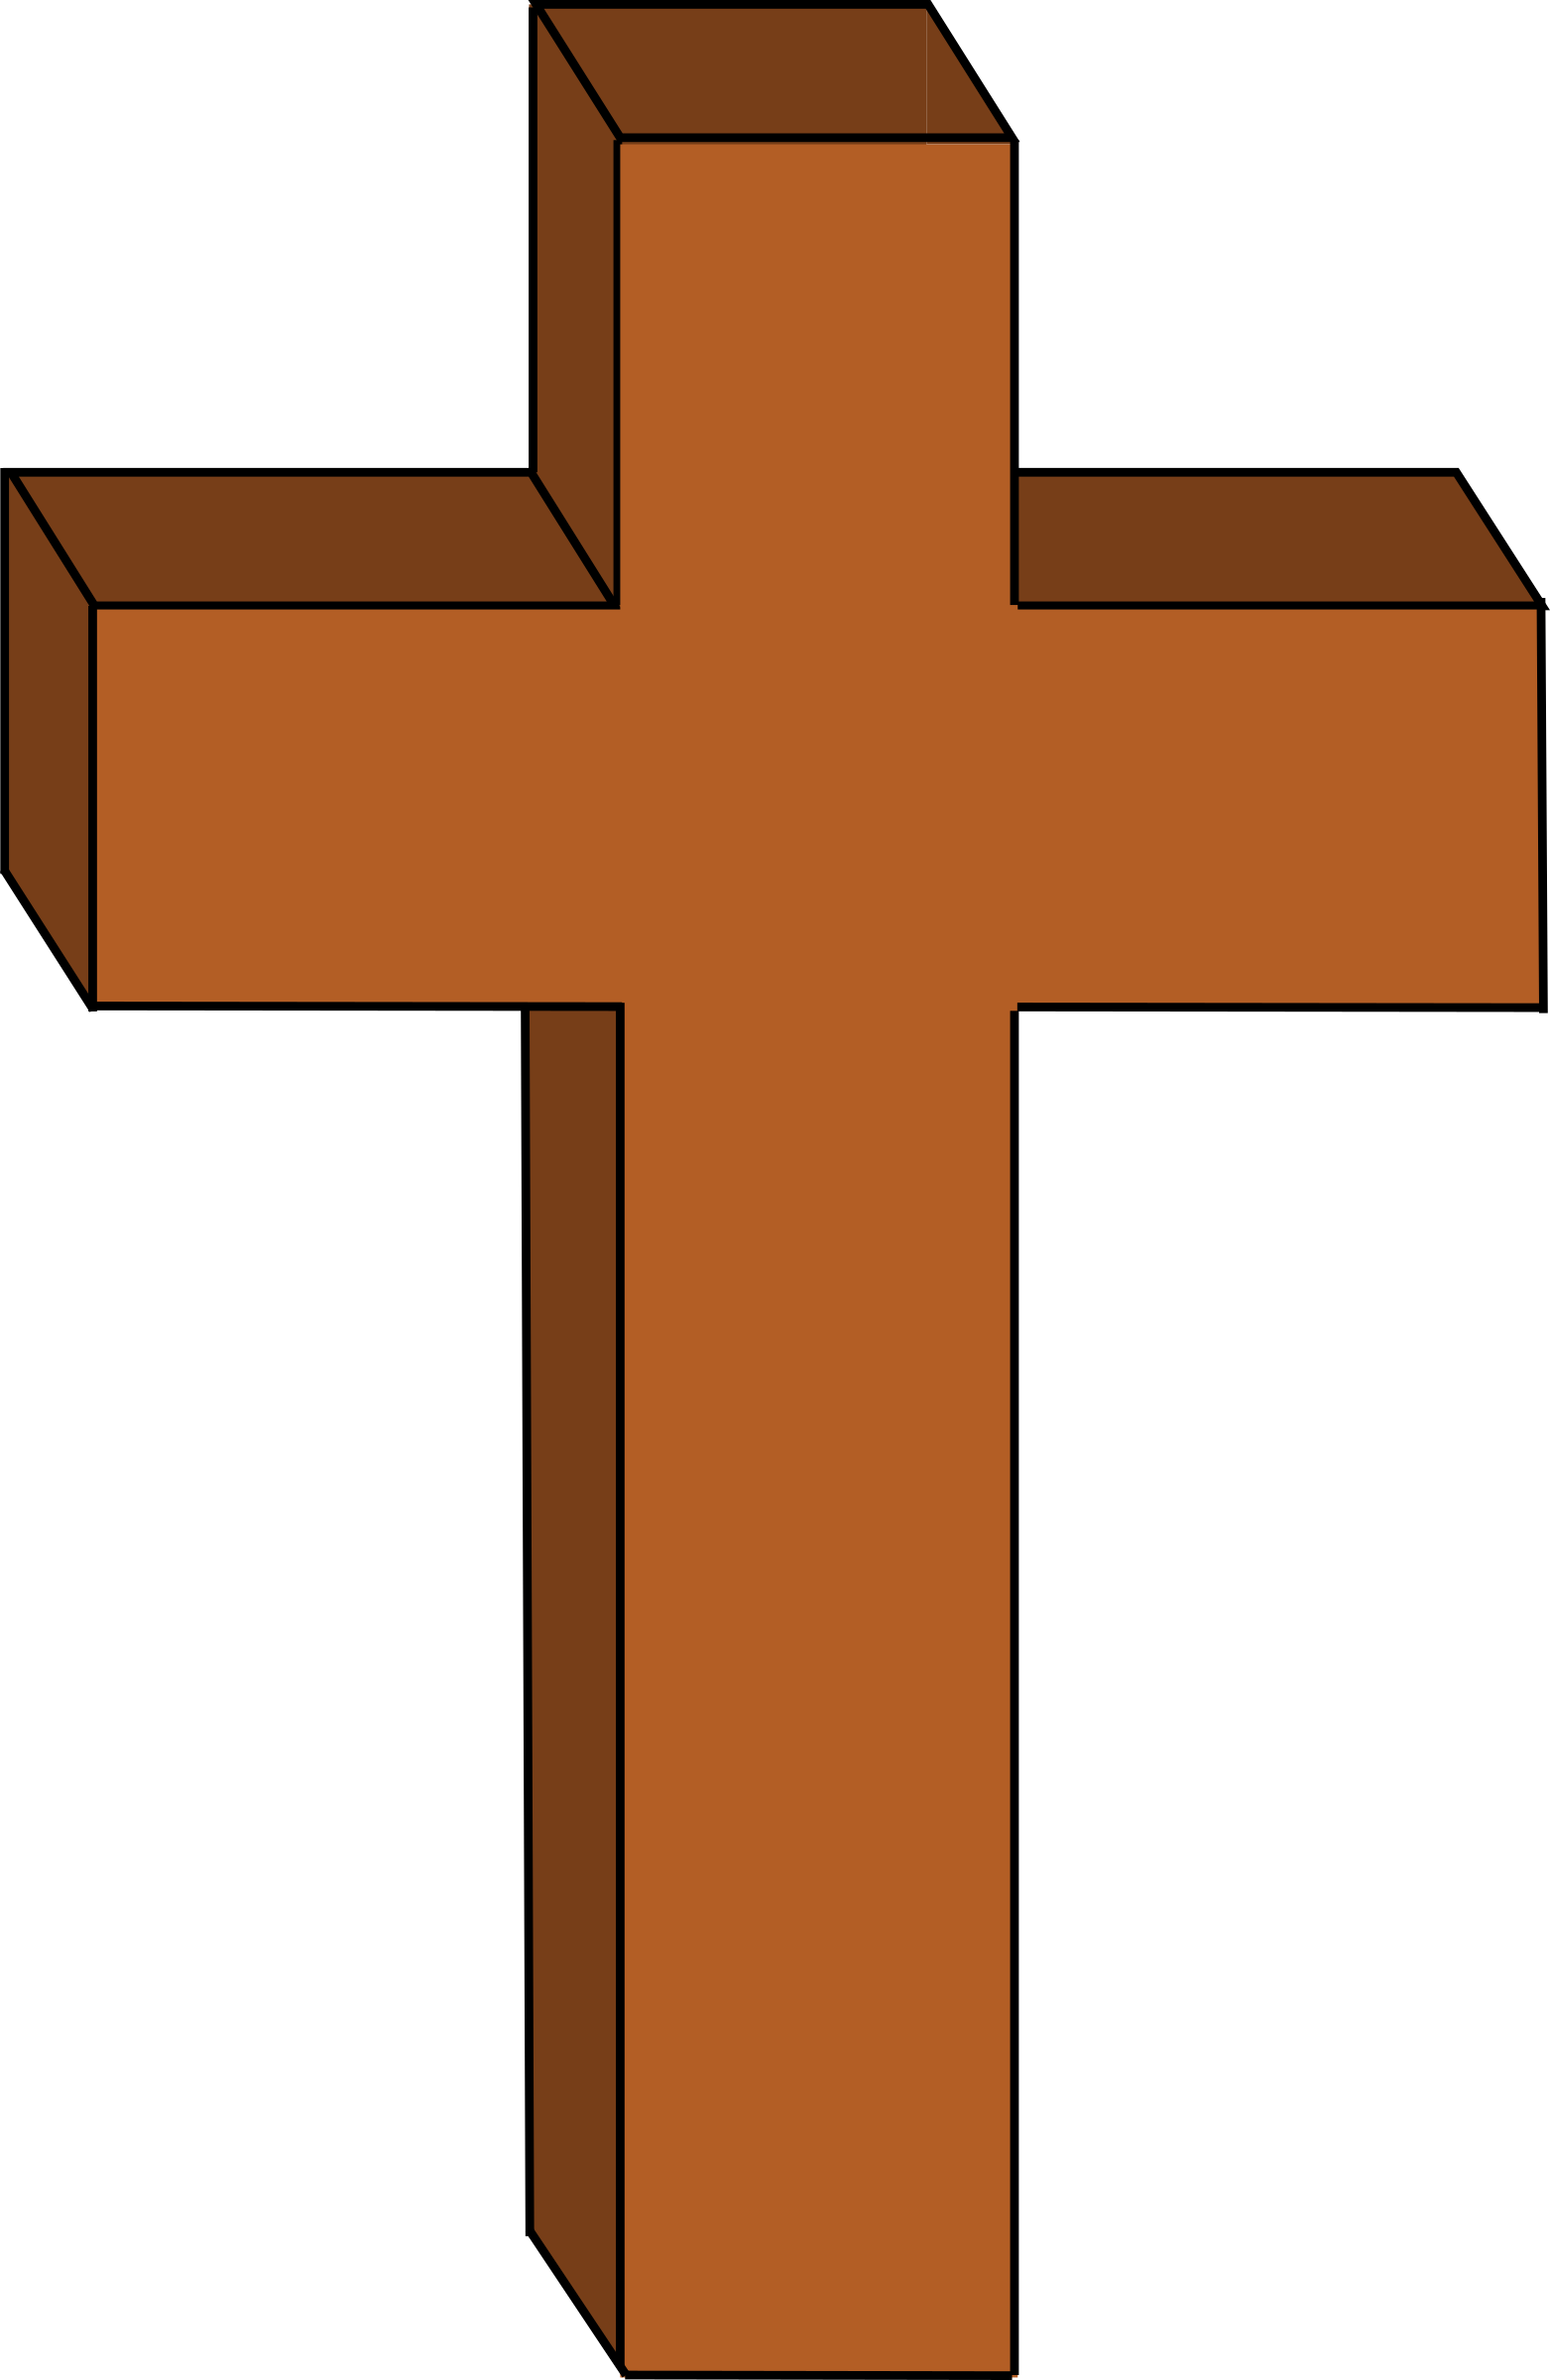 Christian png images free. Cross clip art wooden cross